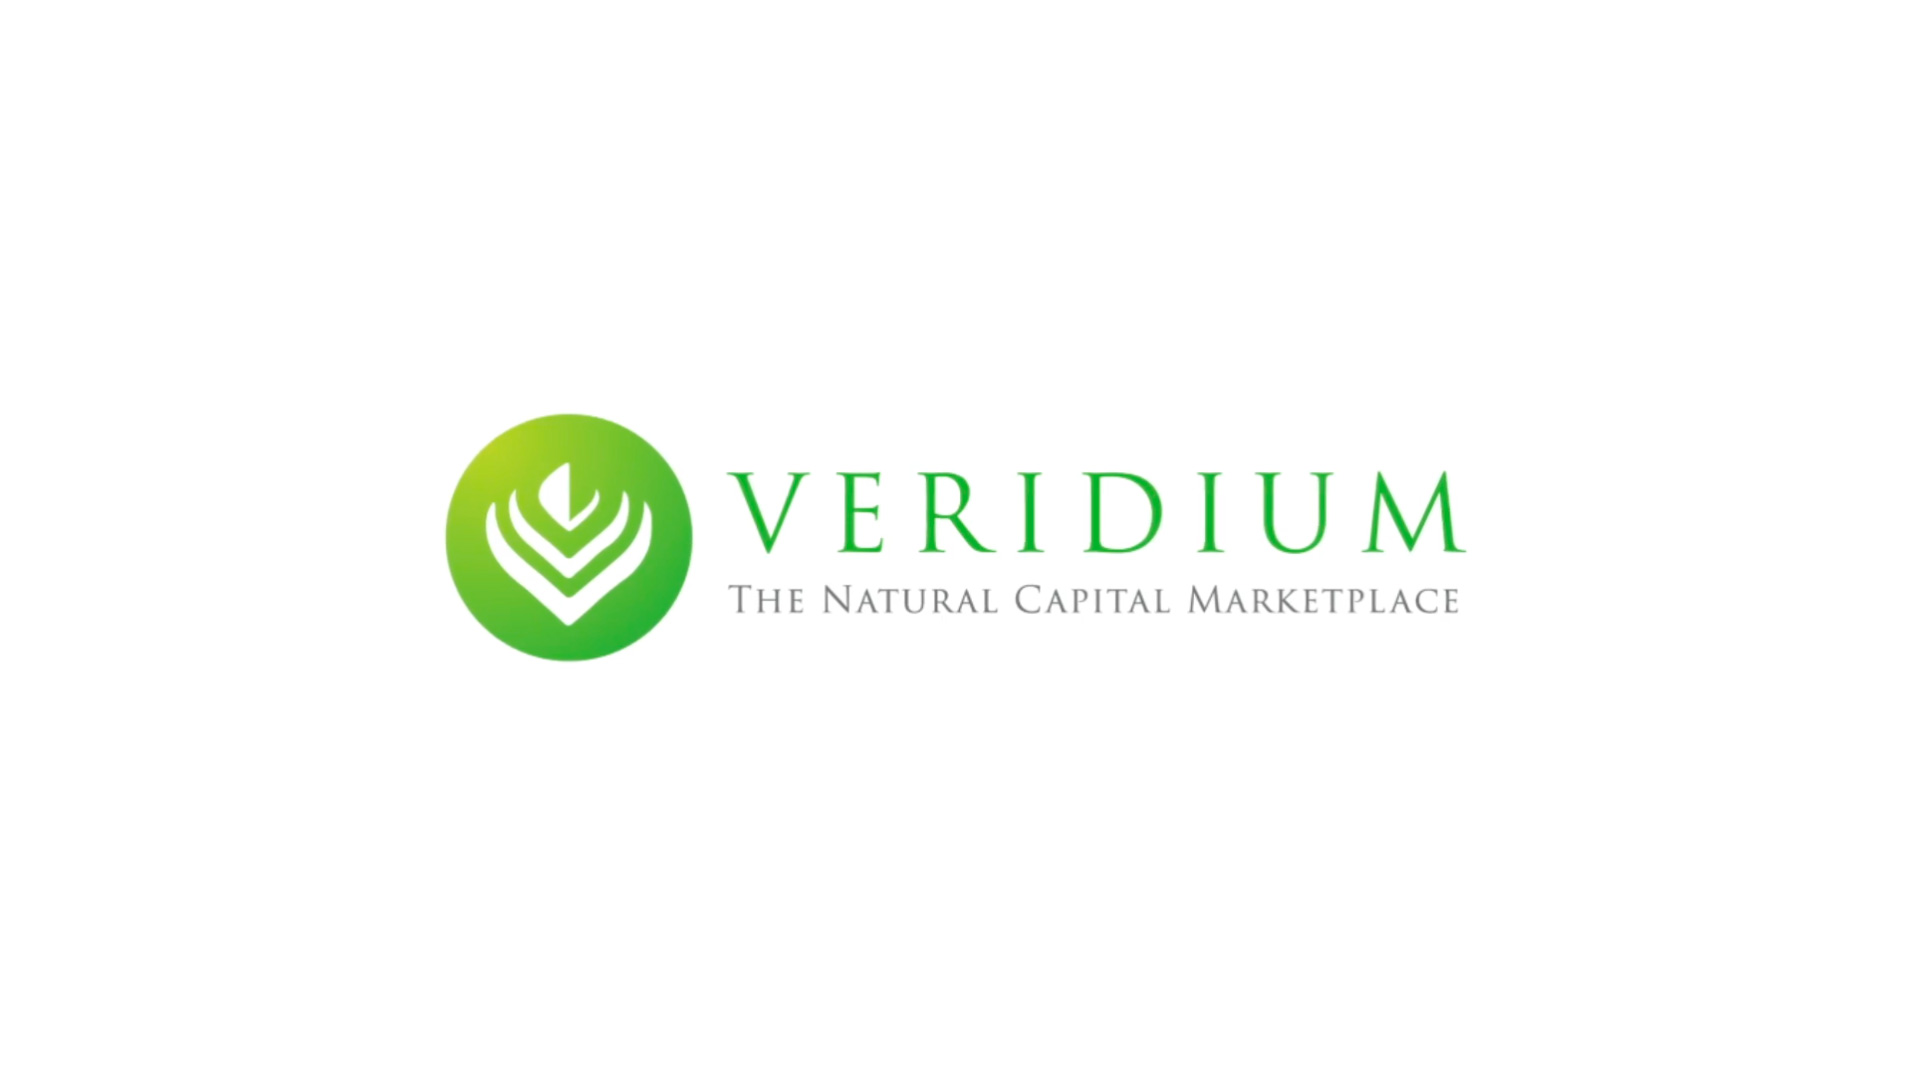 Introducing Veridium